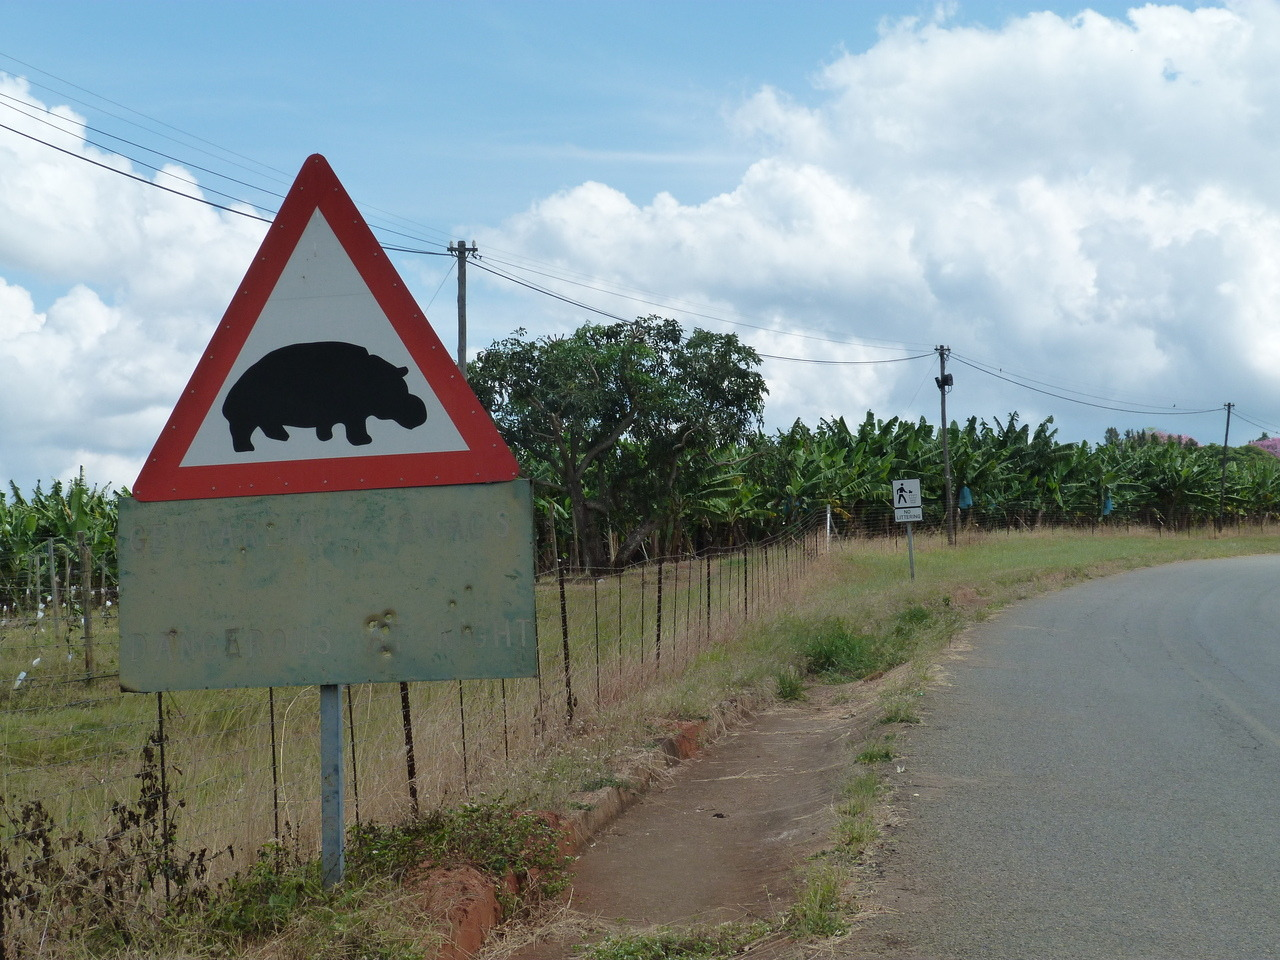 Hippo crossing! Another of my photos from Africa. Peace out.